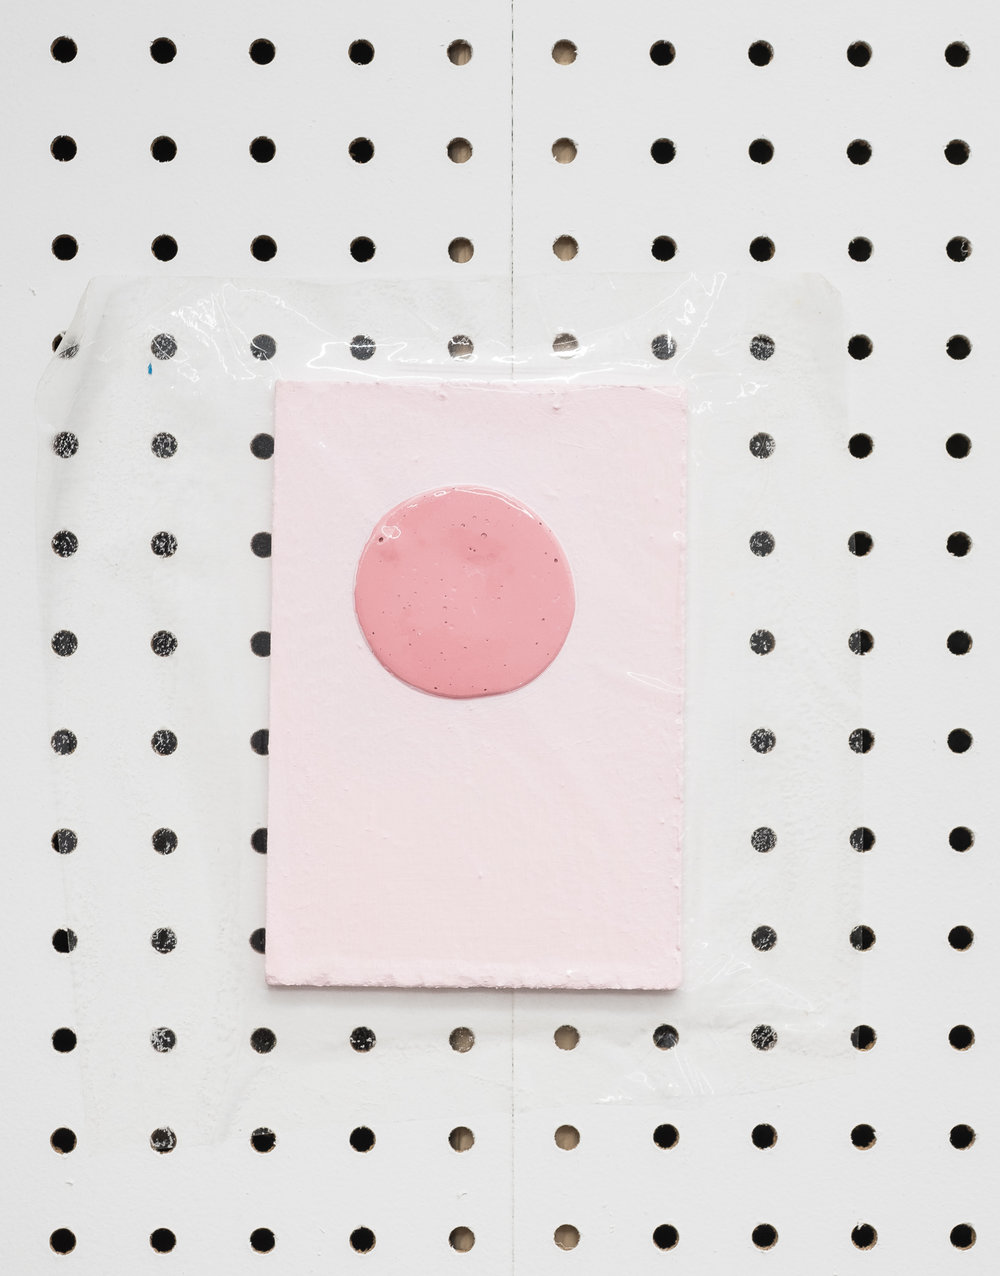 Jeanie Riddle. Bedroom Paint Sample, 2018. Paper, acrylic, plastic. [Photo by Morgane Clément-Gagnon]